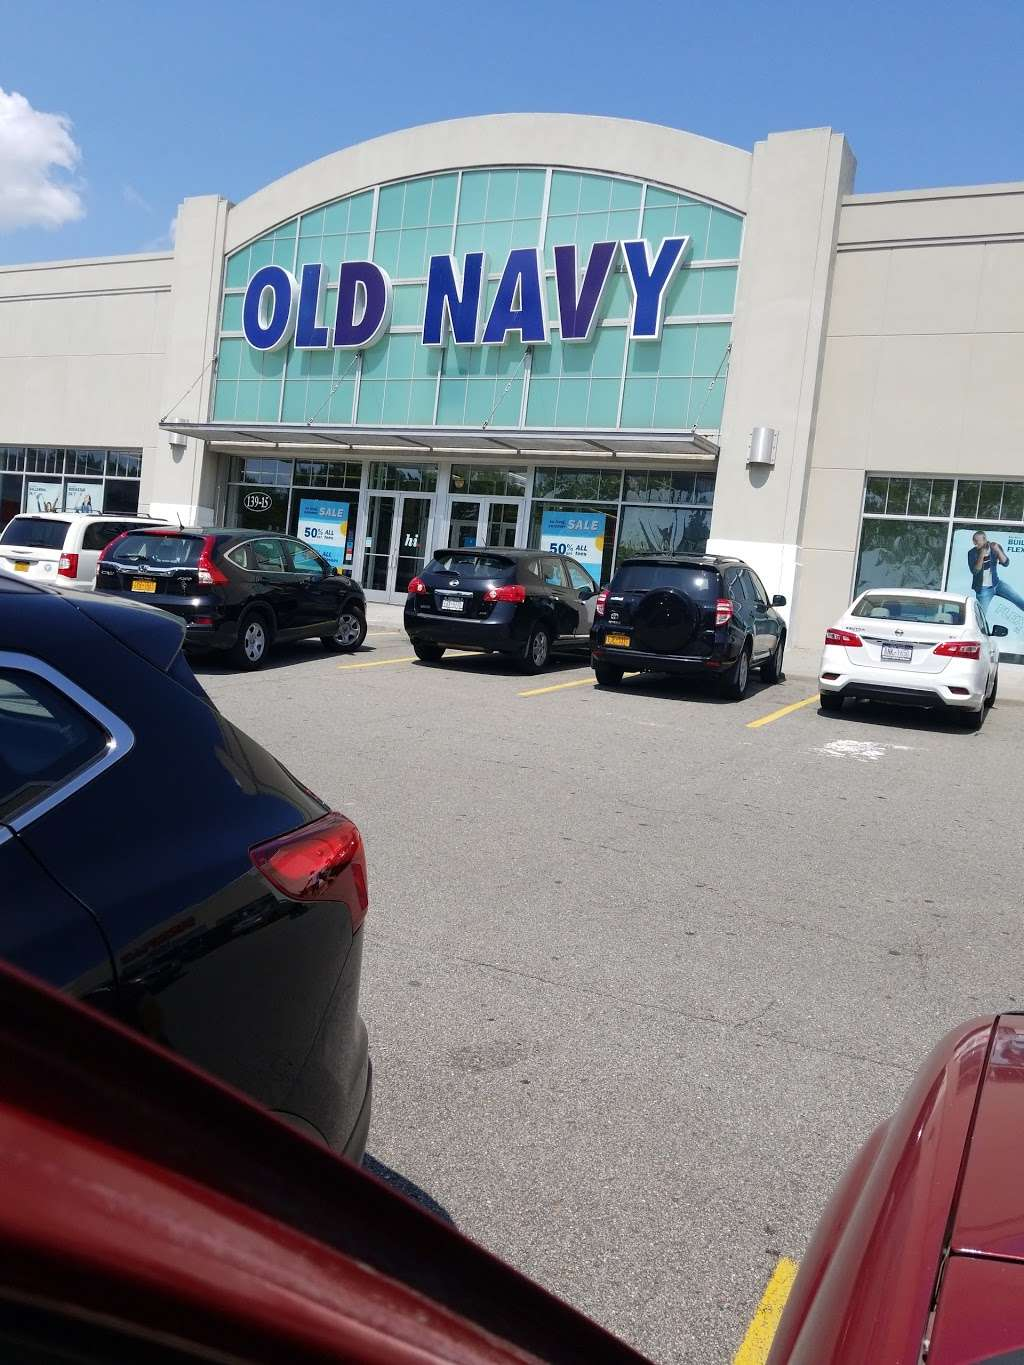 Old Navy - clothing store  | Photo 6 of 10 | Address: 139-15 20th Ave, College Point, NY 11356, USA | Phone: (718) 461-6986